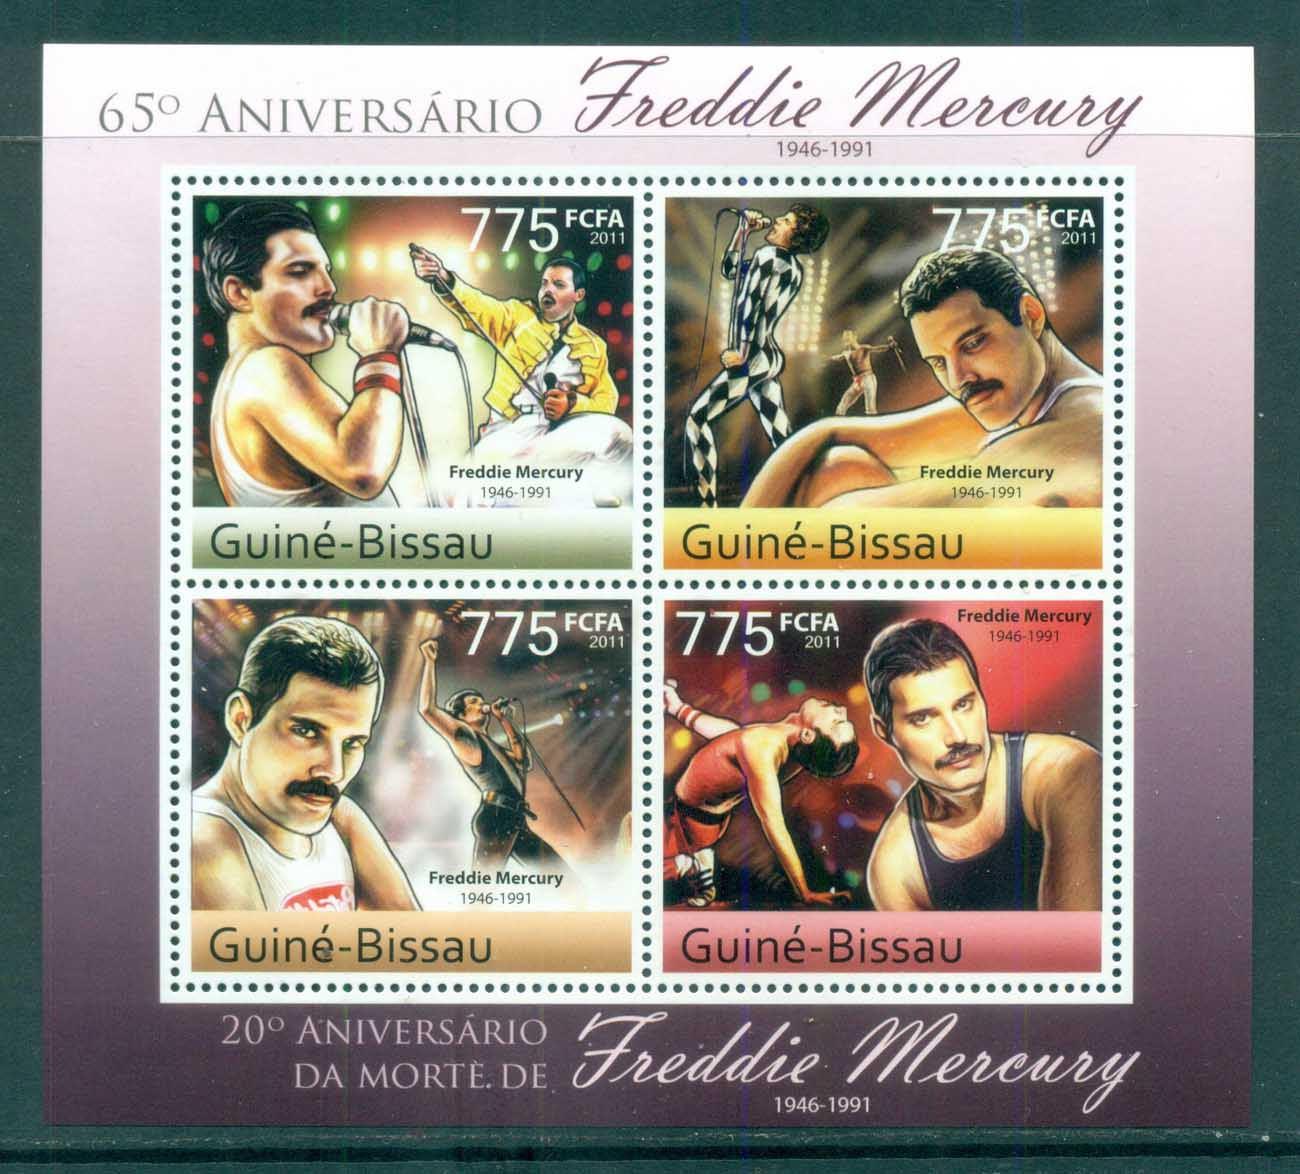 Guinea Bissau 2011 Famous People, Music, Male, Freddie Mercury MS MUH GB031